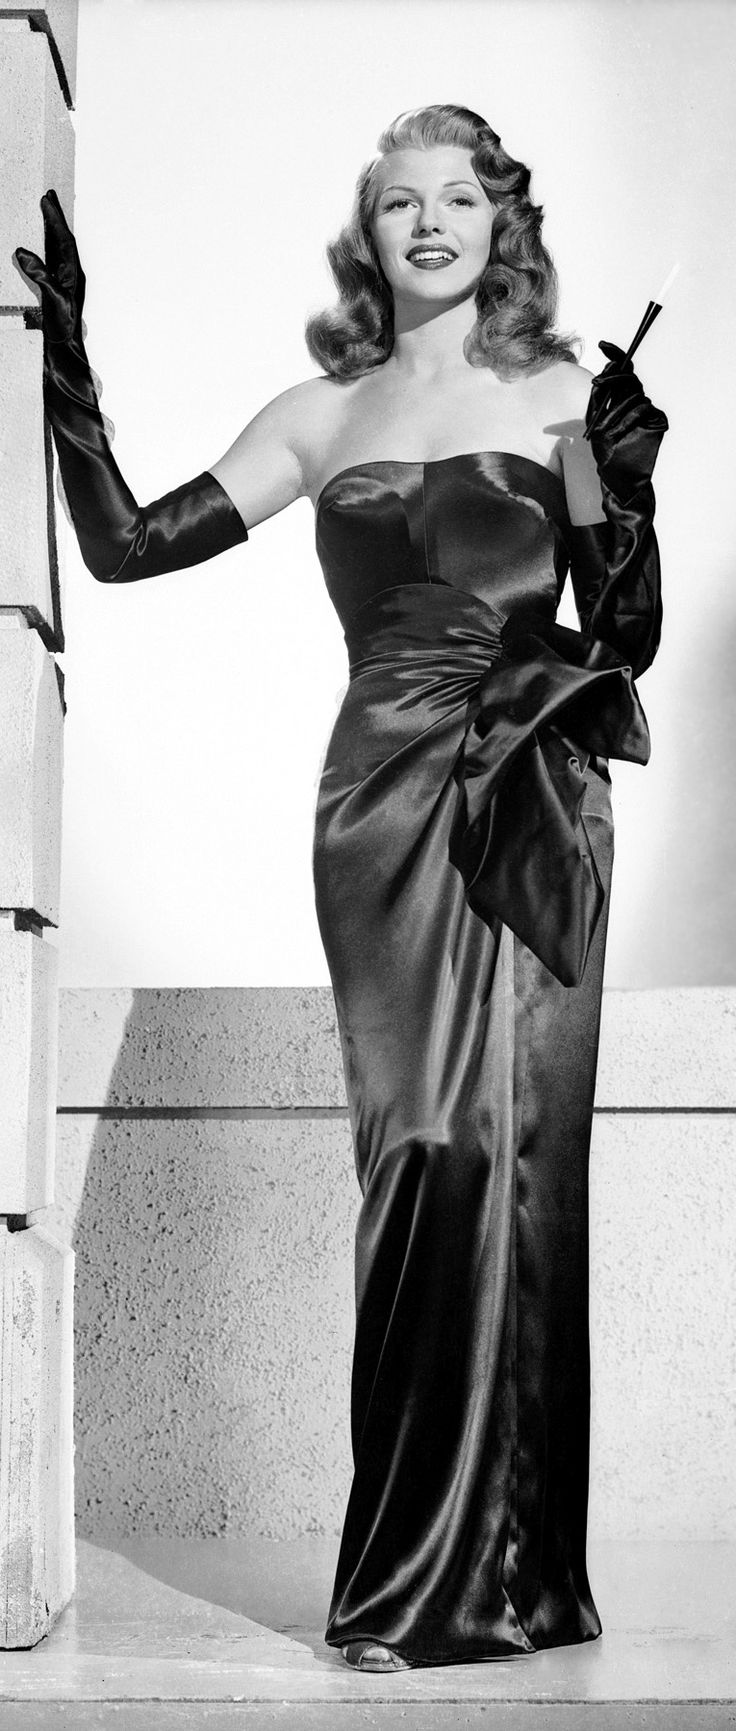 Rita Hayworth | 1940s Glamour Queen of the Silver Screen | 1950s Classic Hollywood Icon | Diva | Dame | Vintage Evening Gown | Gloves and Cigarette | Pinup | Kitten | Vixen | Cheesecake